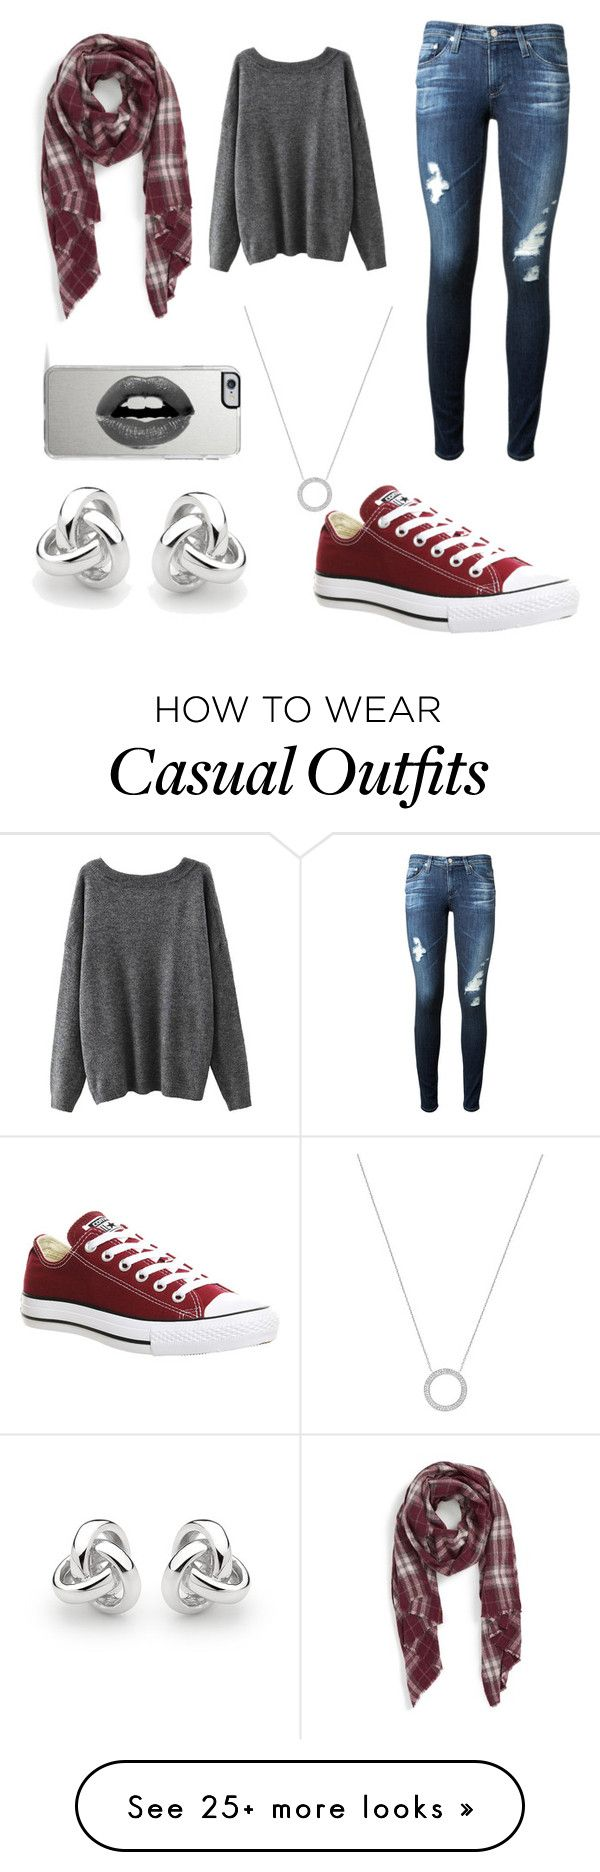 """casual"" by marissahaines77 on Polyvore featuring AG Adriano Goldschmied, Michael Kors, Converse, Sole Society, Lipsy and Georgini"